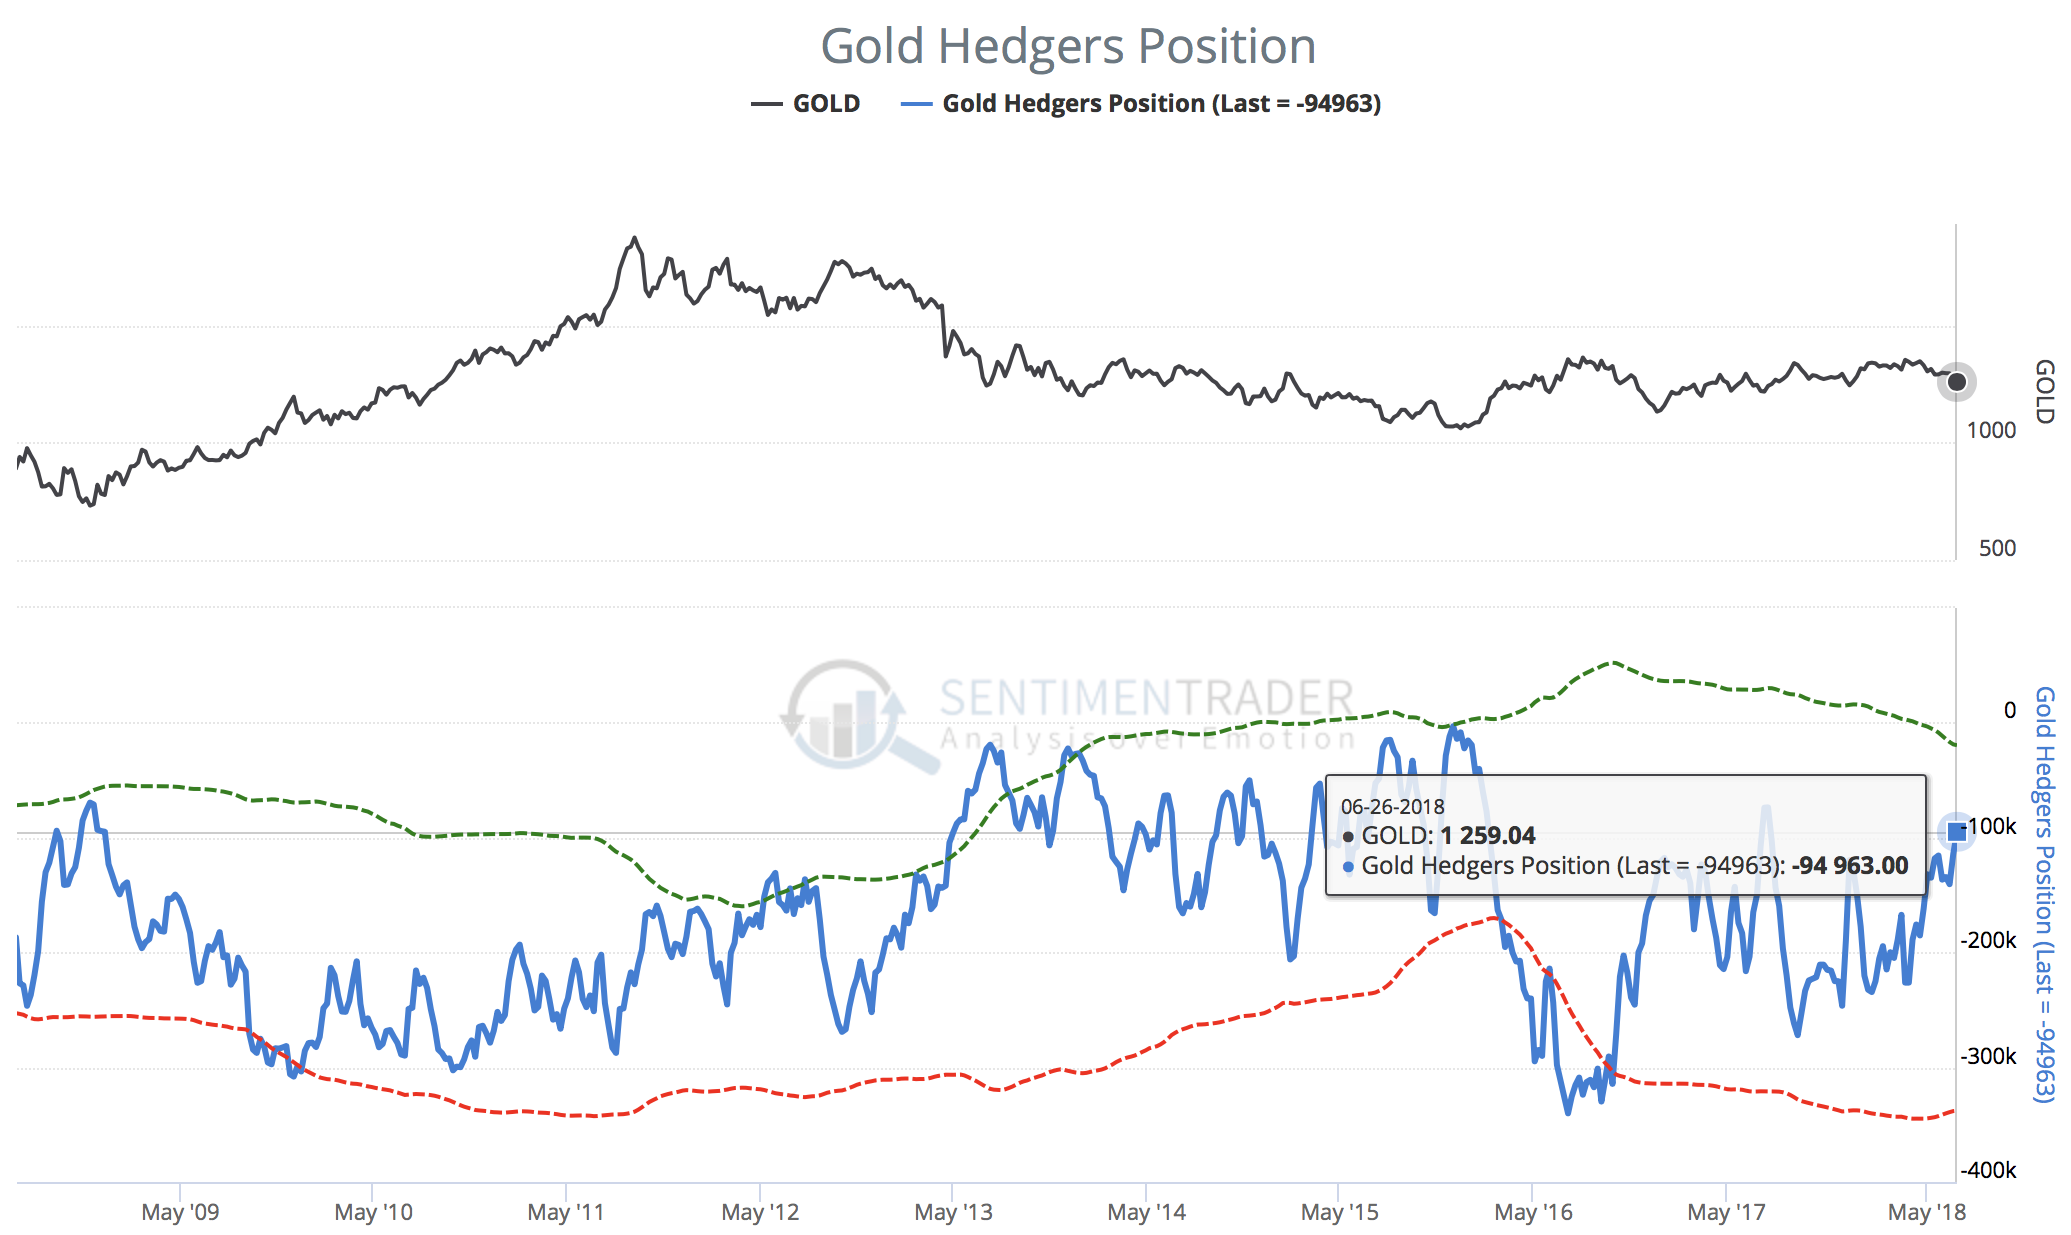 Gold Hedgers Position from June 26th, 2018